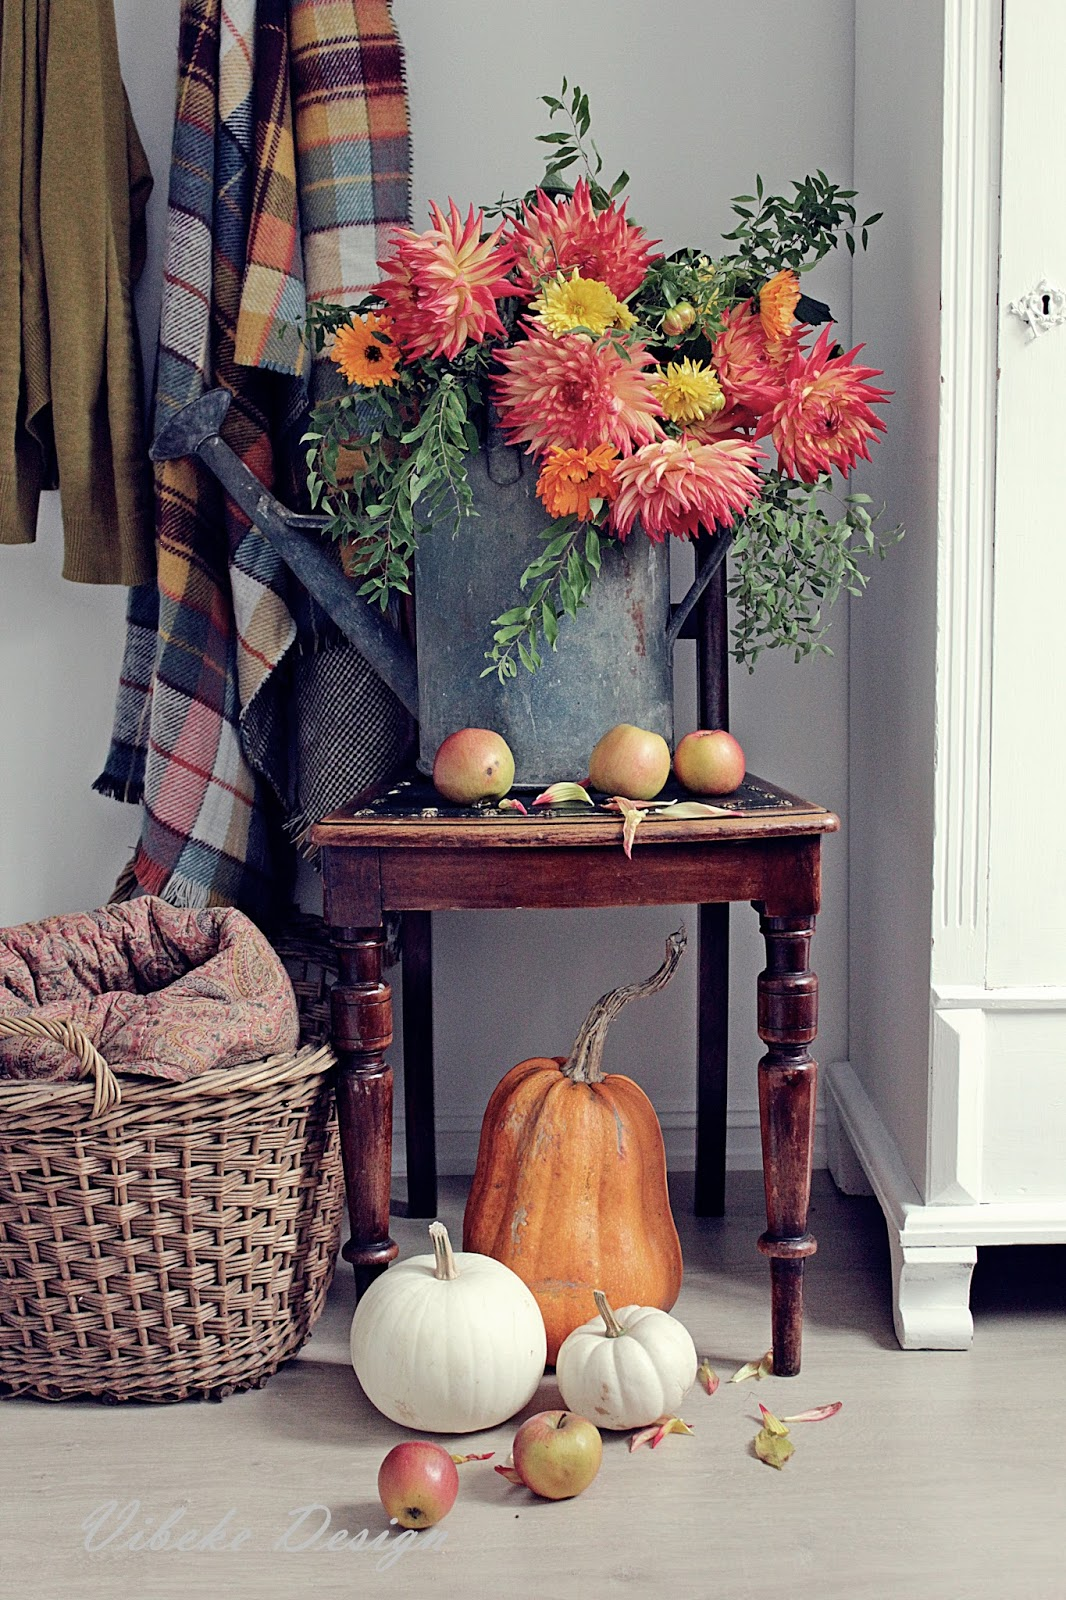 Beautiful fall vignette with vintage and natural decor